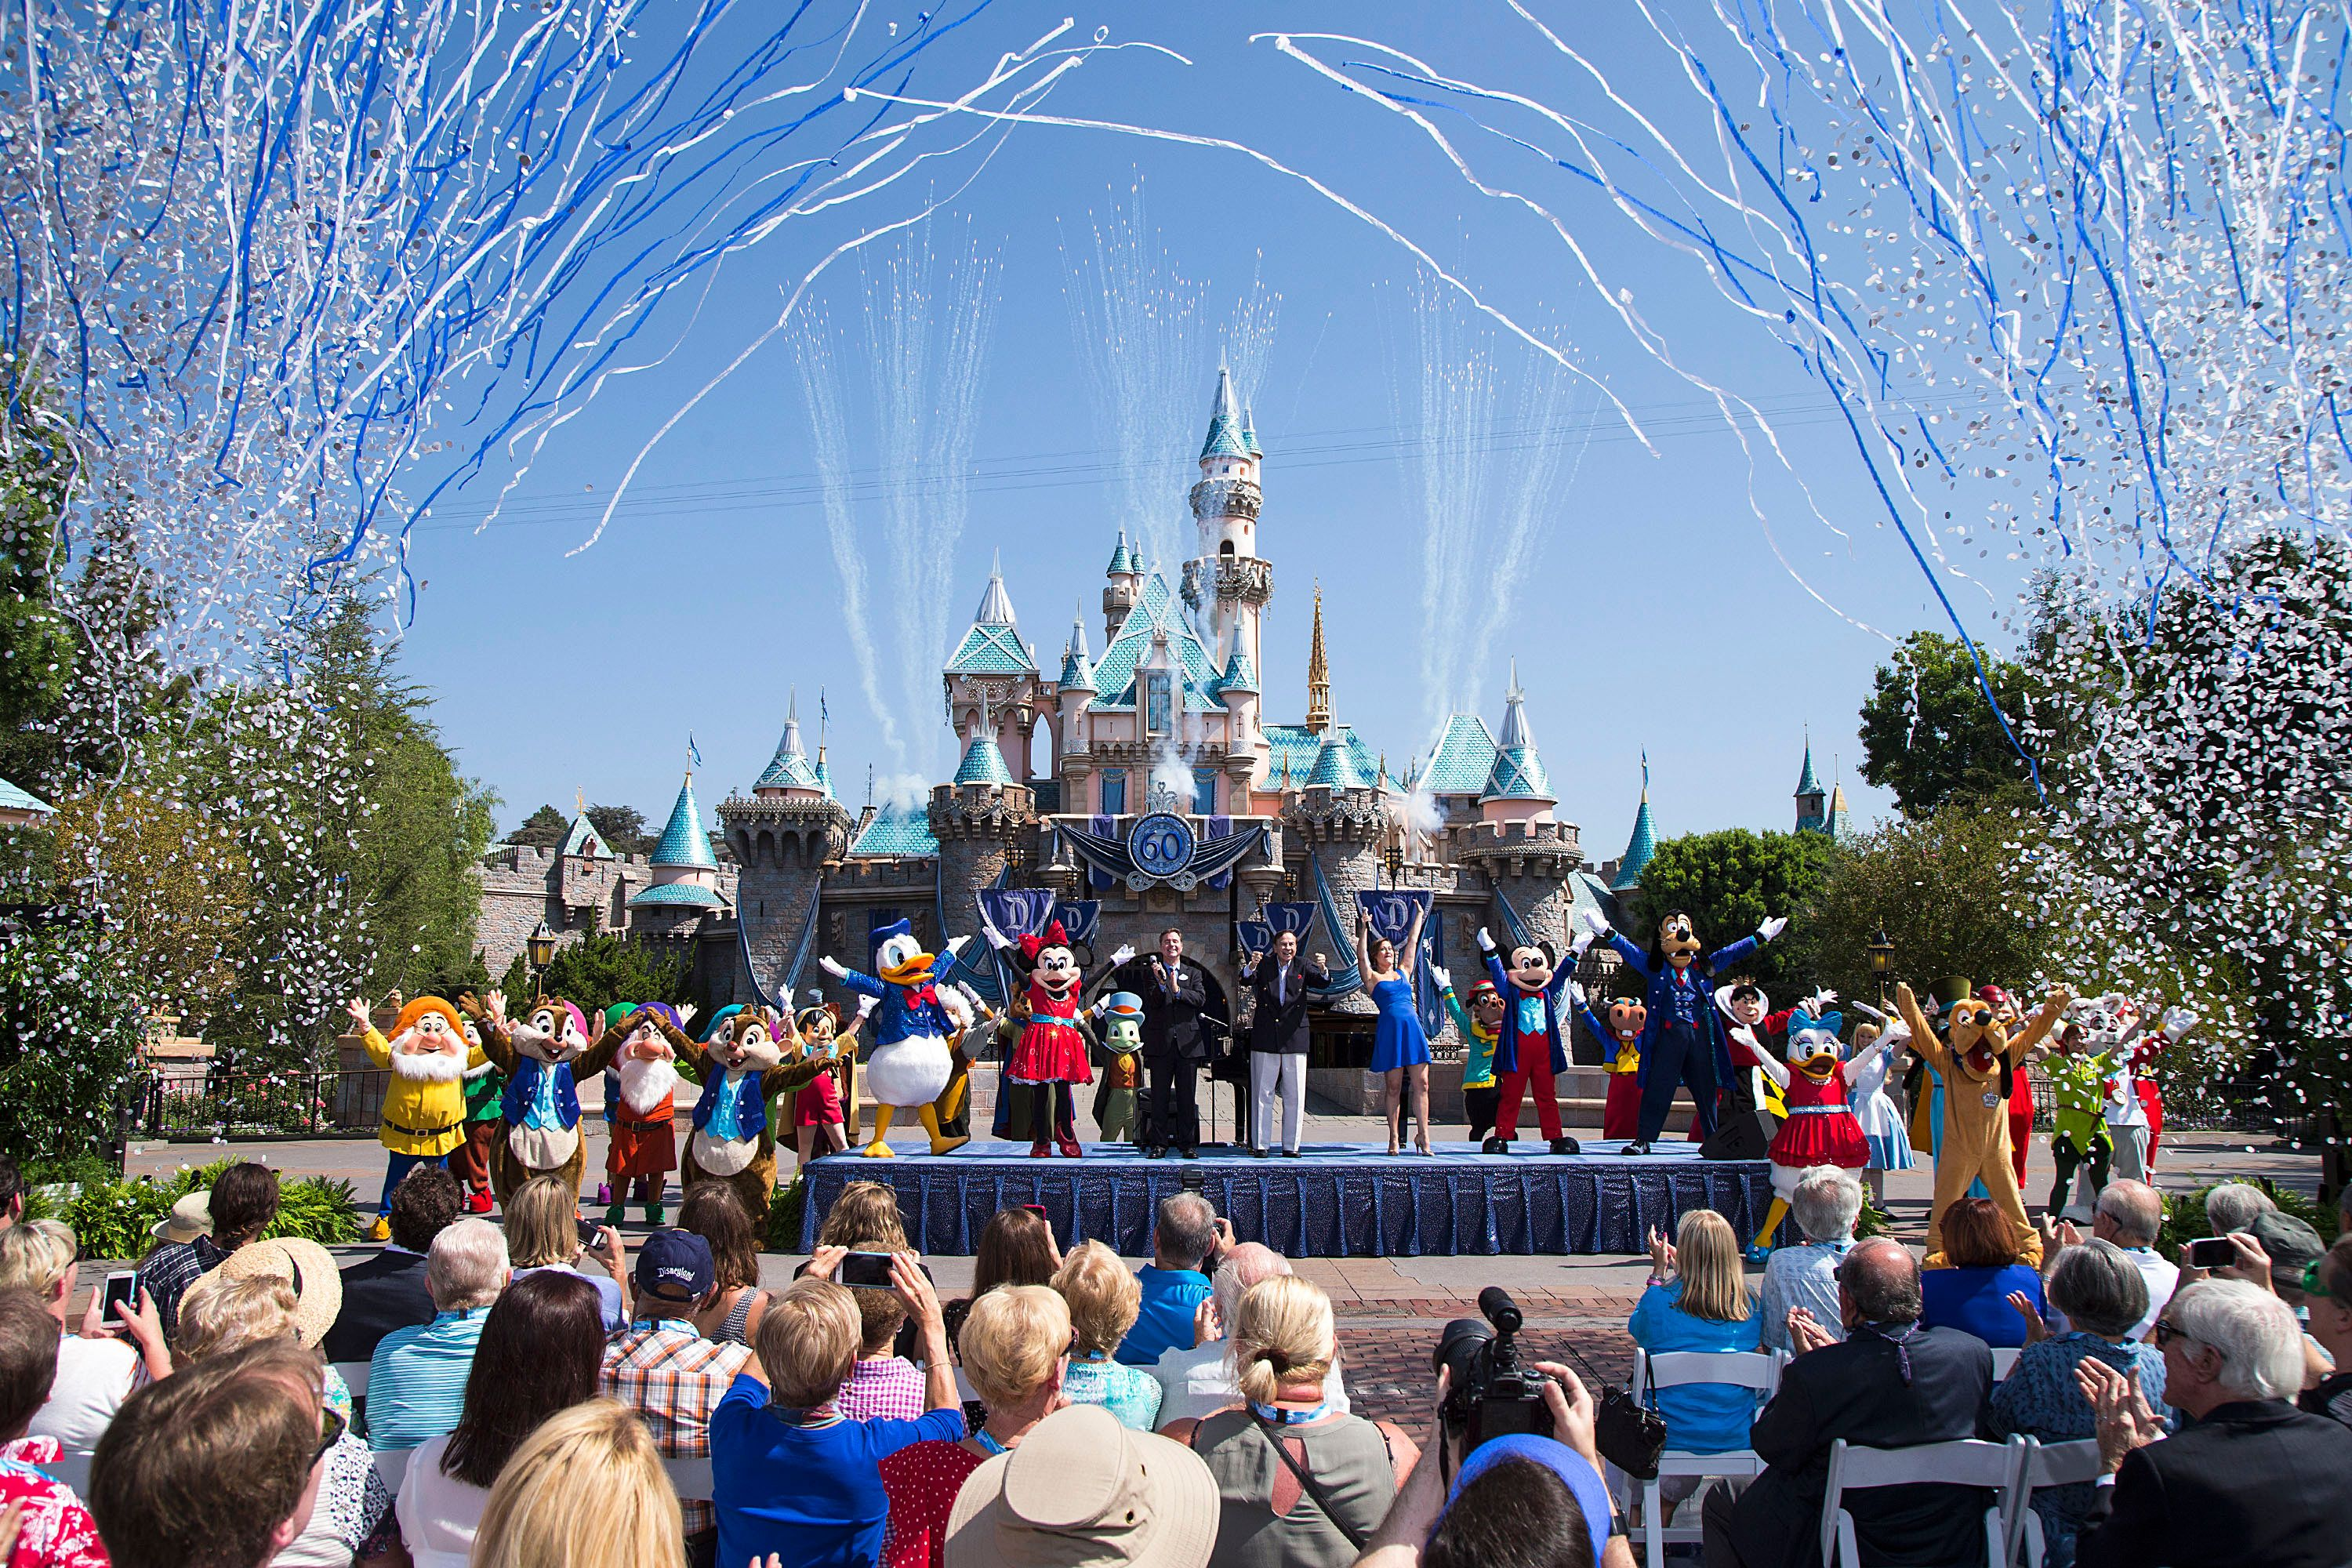 Disneyland Fans Are Not Happy About The Latest Price Hikes